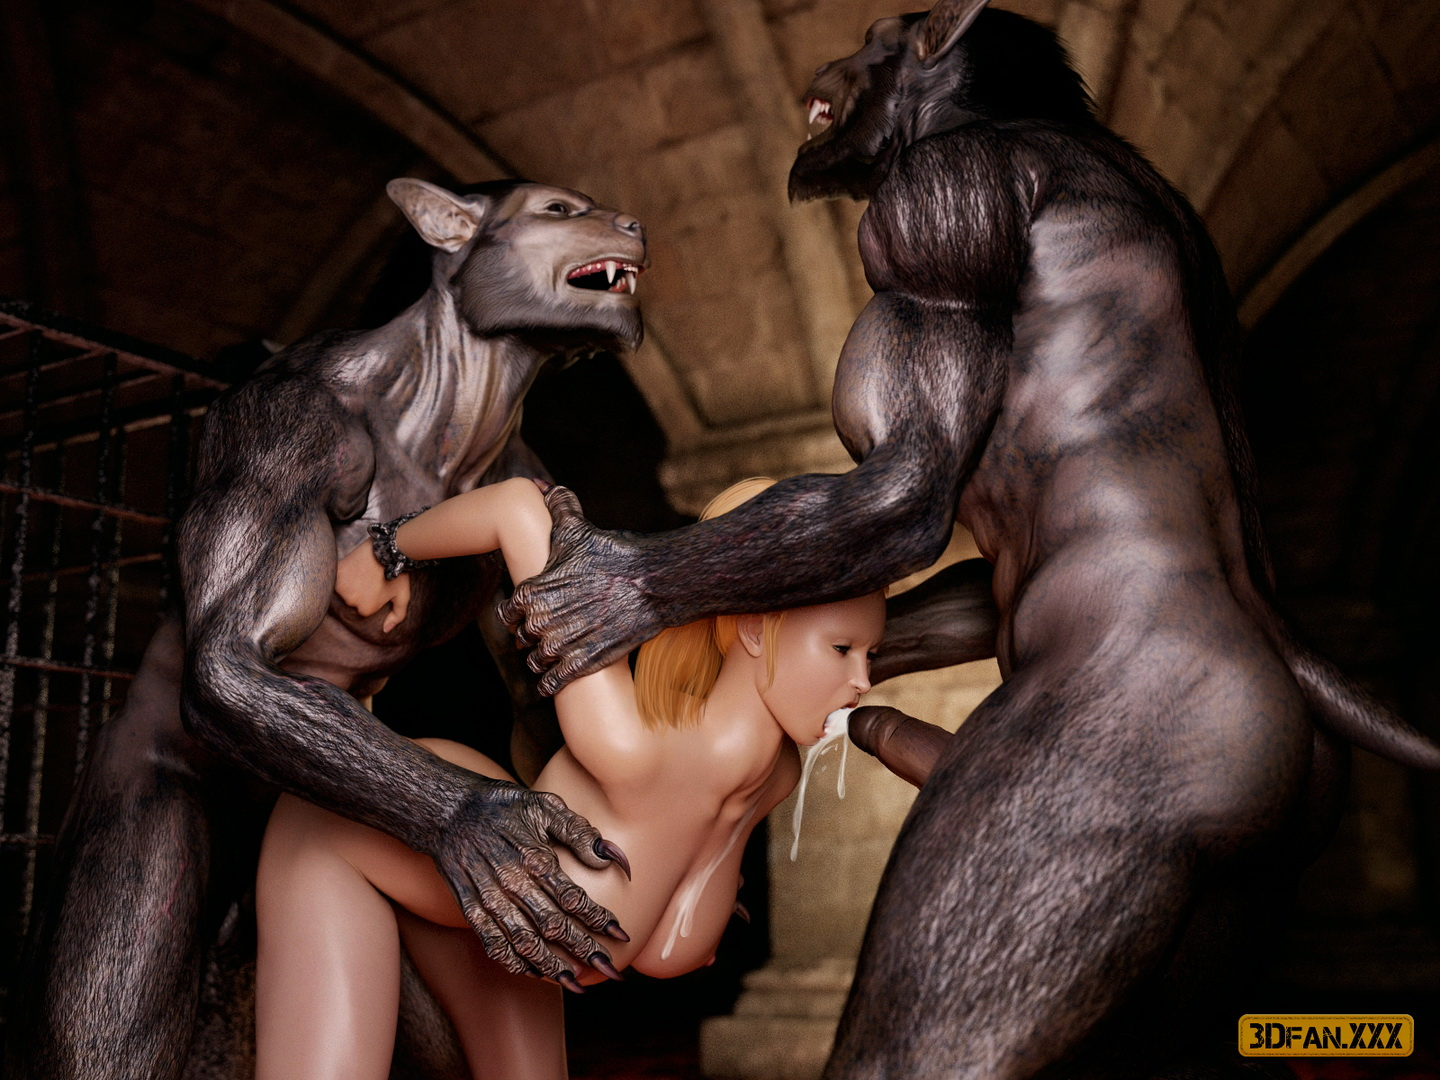 Free3d monsterporn videos nackt images